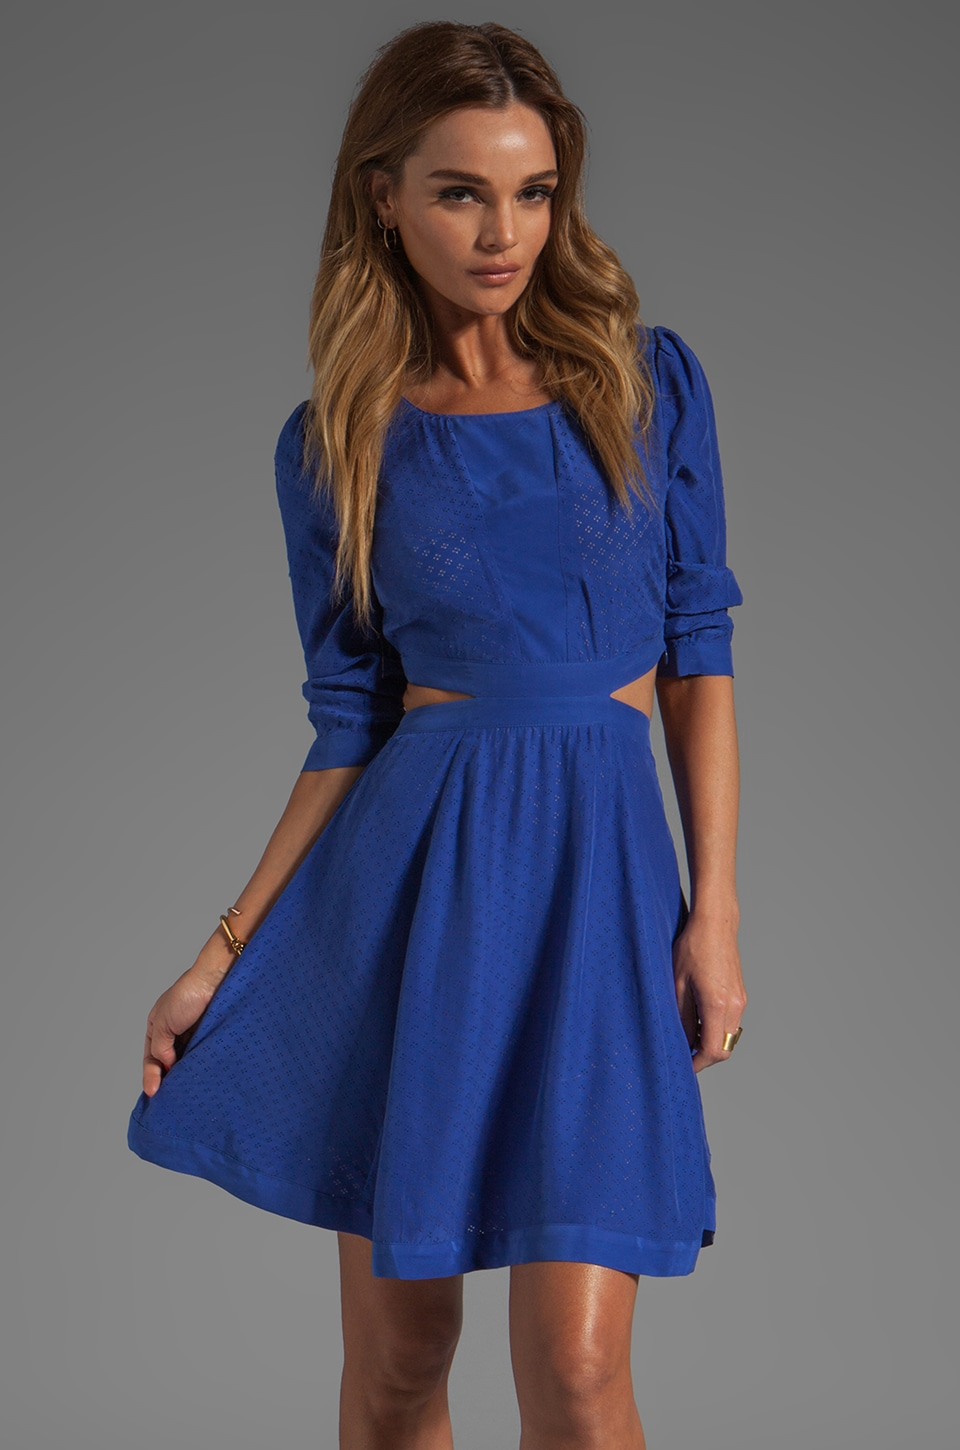 harlyn Peek-A-Boo Fit & Flare Dress in Blue